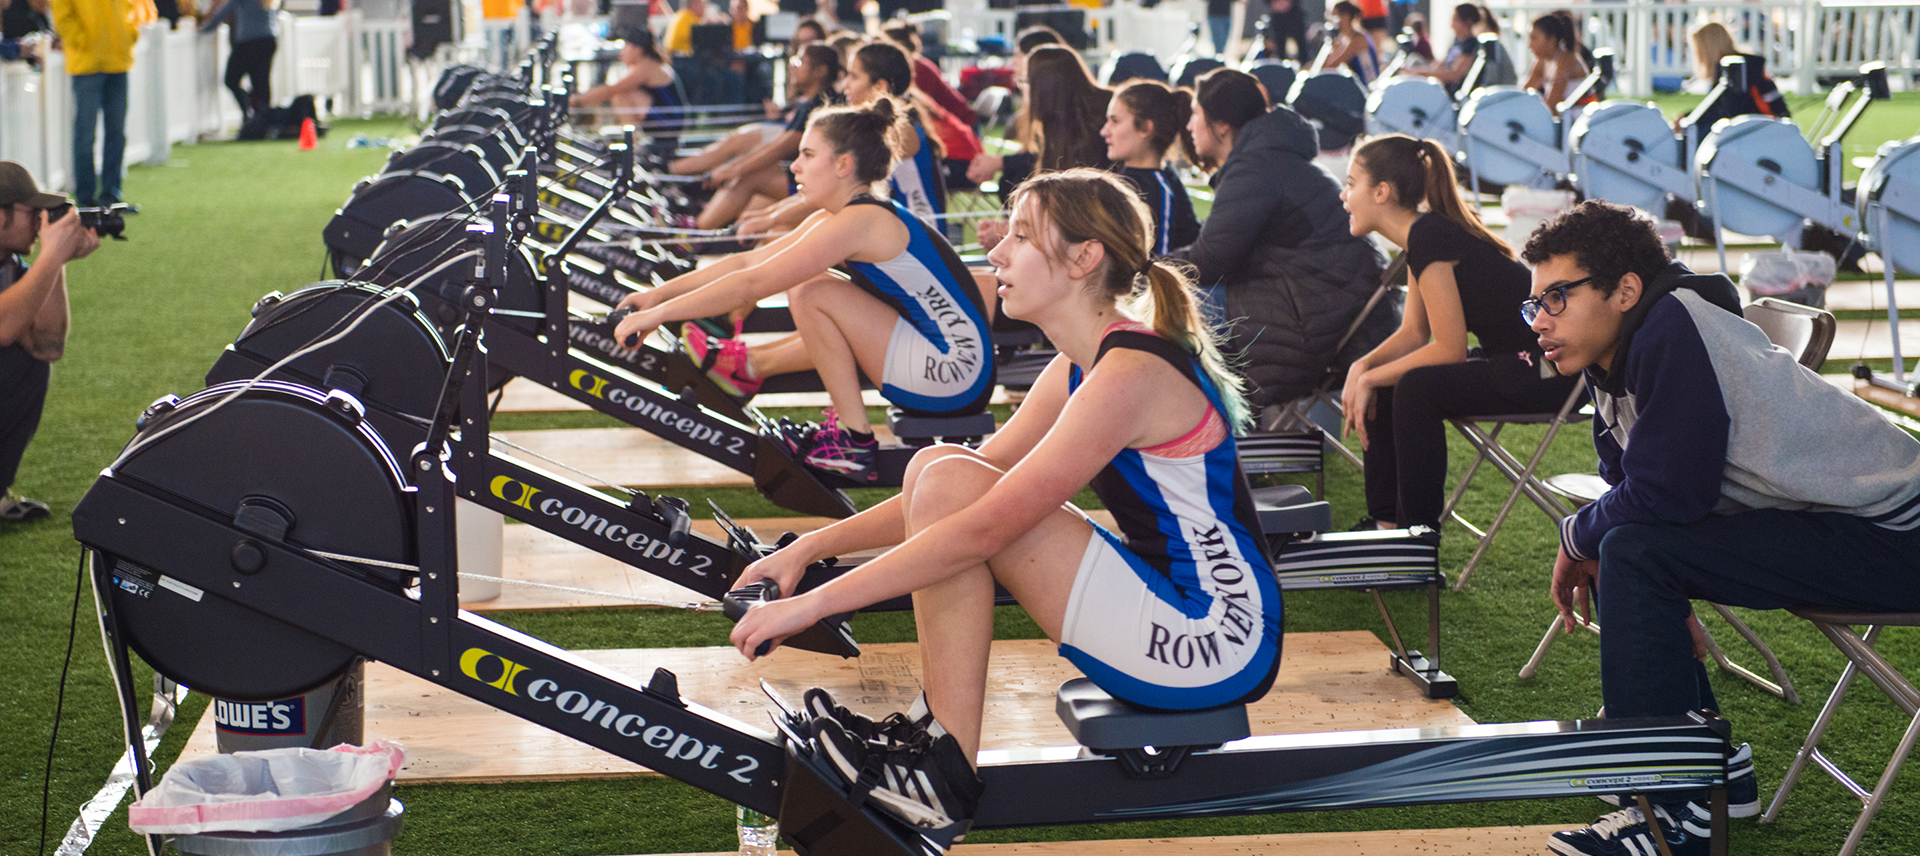 Row Run New York WEROW rowing UK - Row New York: transforming the lives of New Yorkers